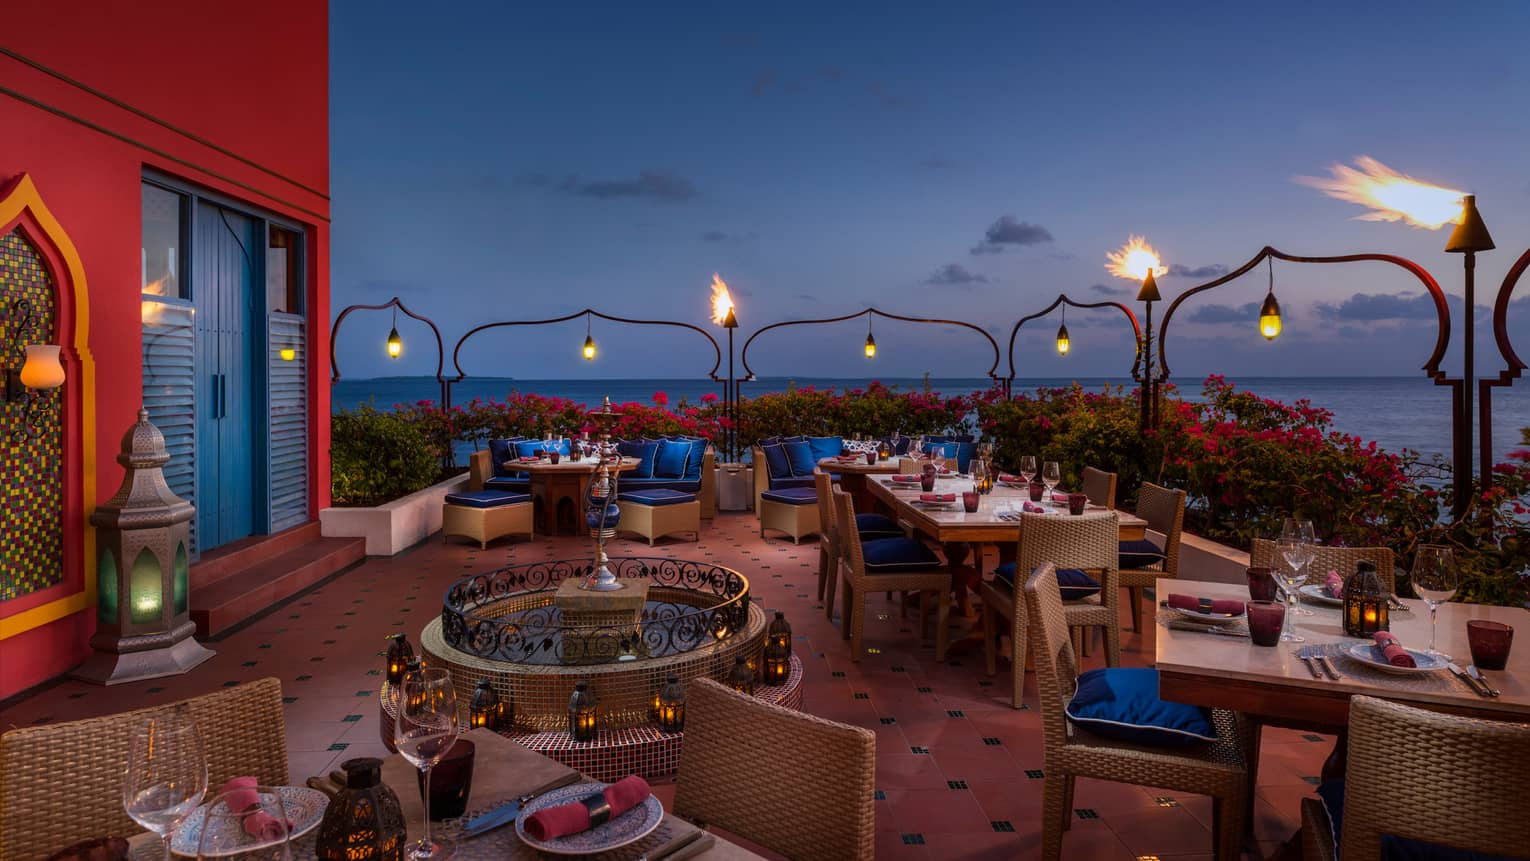 Al Barakat elegant rooftop shisha  bar with glowing lanterns, tile fountain, deep red and blue decor